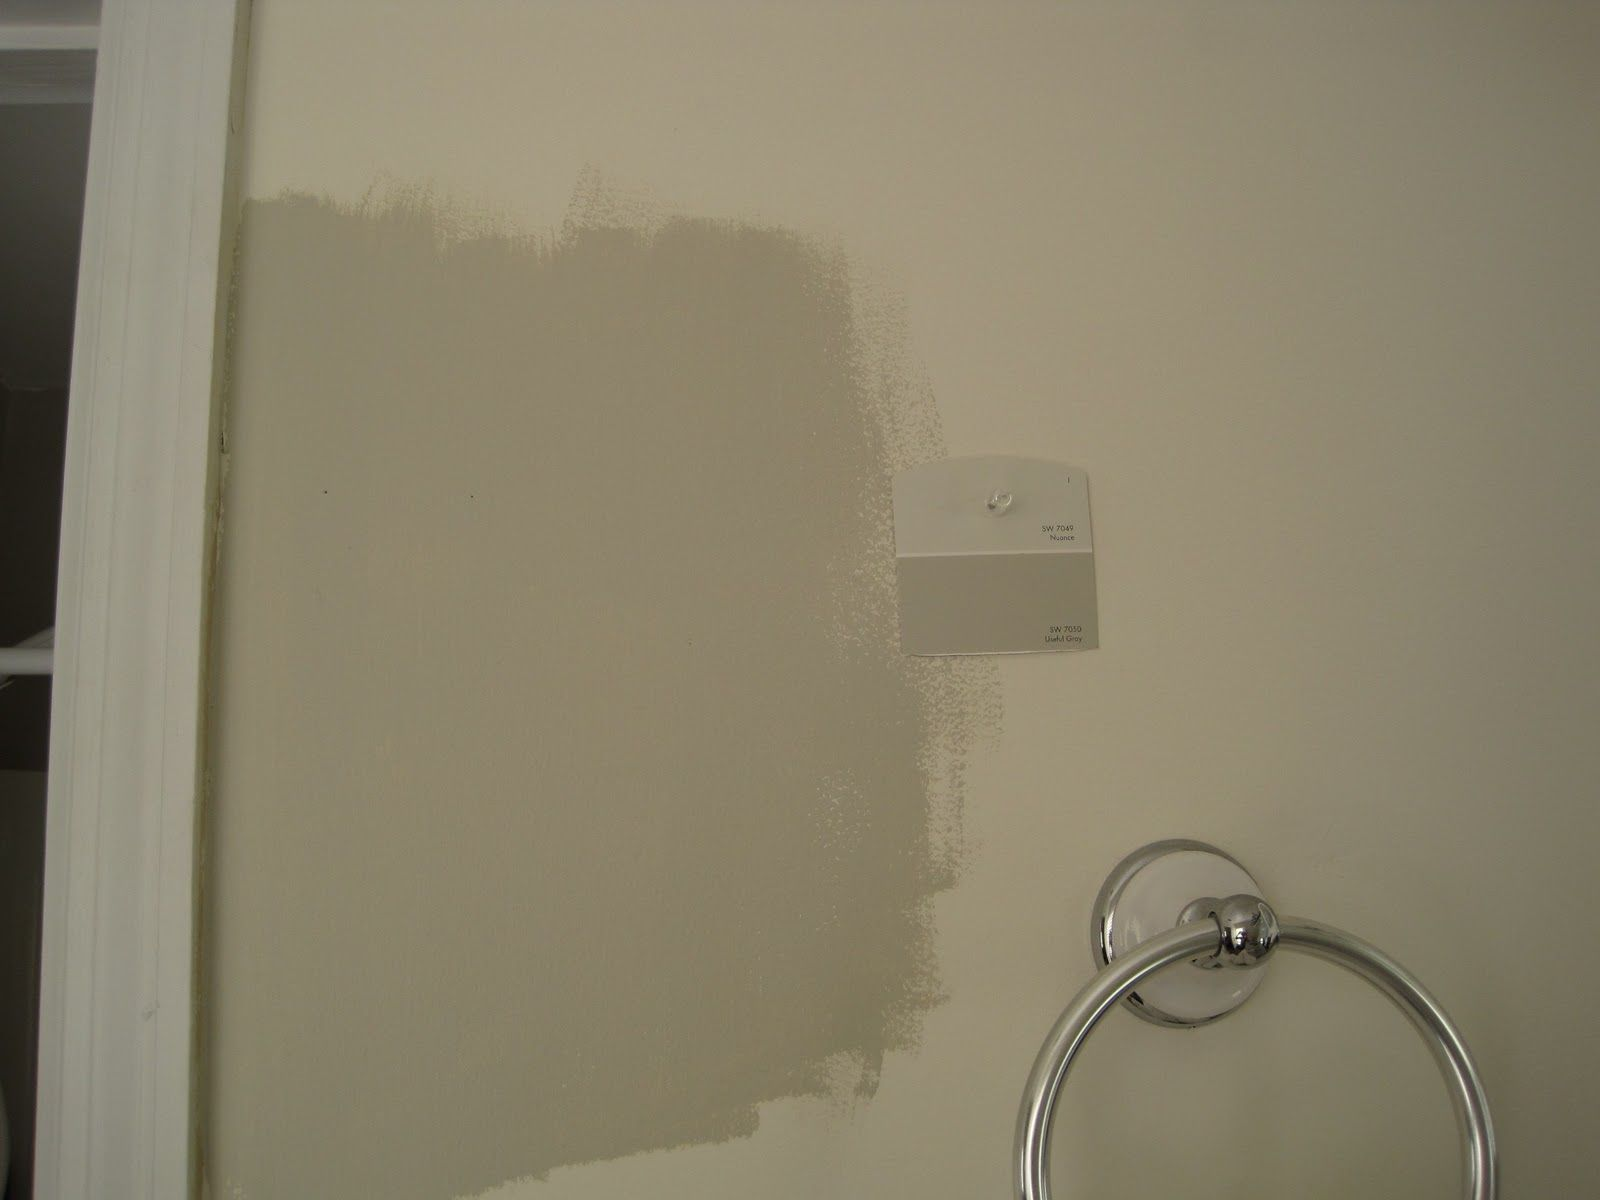 Canvas Tan Sw Useful Gray Left Right Favorite Tan Sw Anew Gray Anew Gray Sherwin Williams Wall Paint Colors